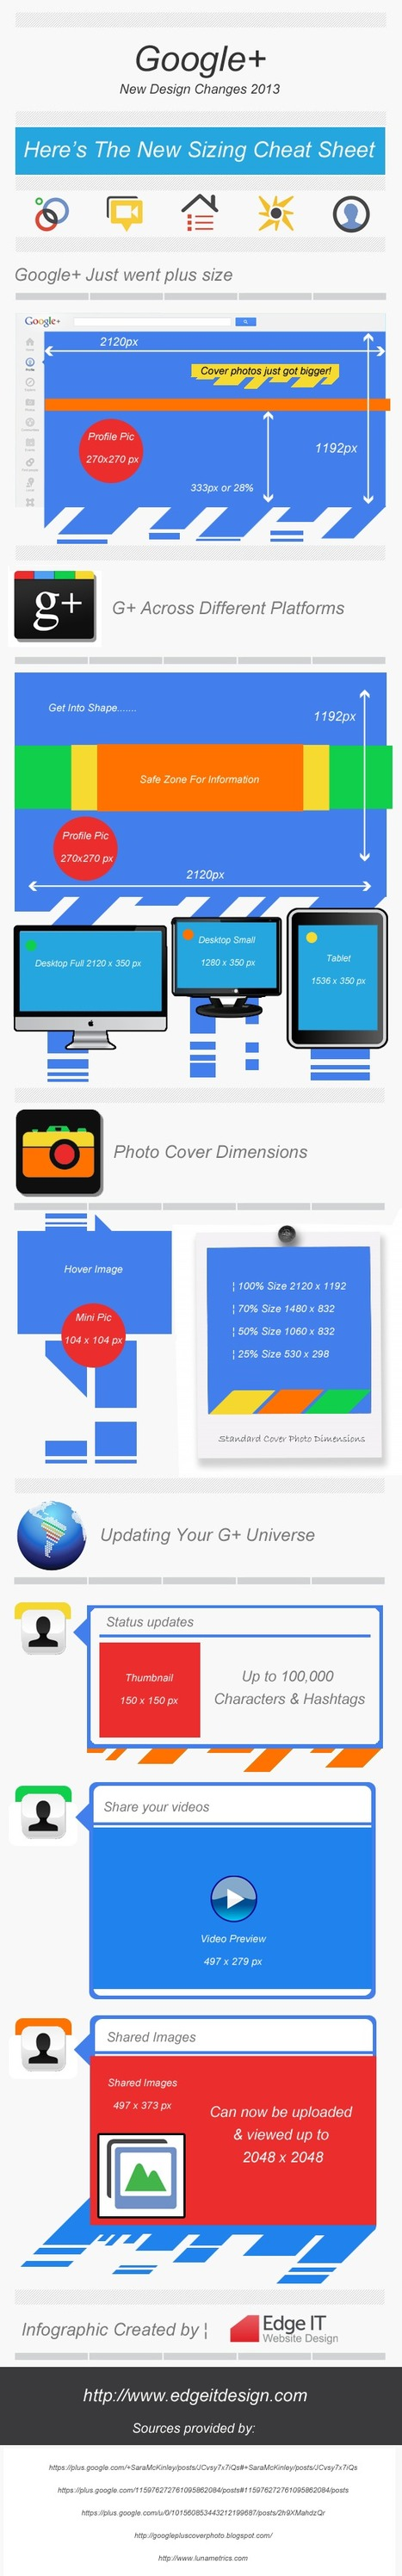 Google+ Design Cheat Sheet [Infographic] | Content Curation for dummies | Scoop.it